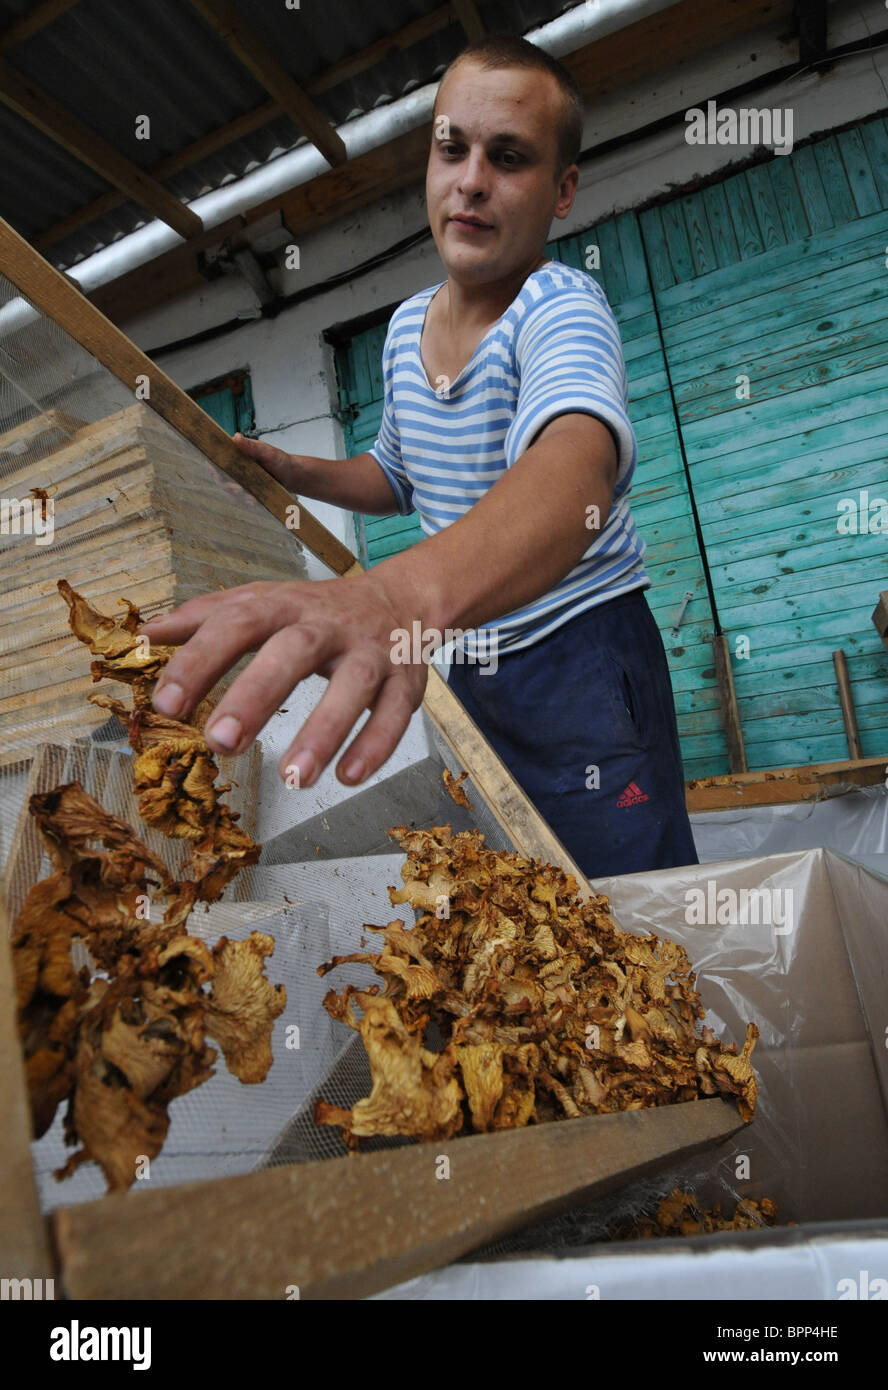 Mushrooms to dealers for processing - Stock Image